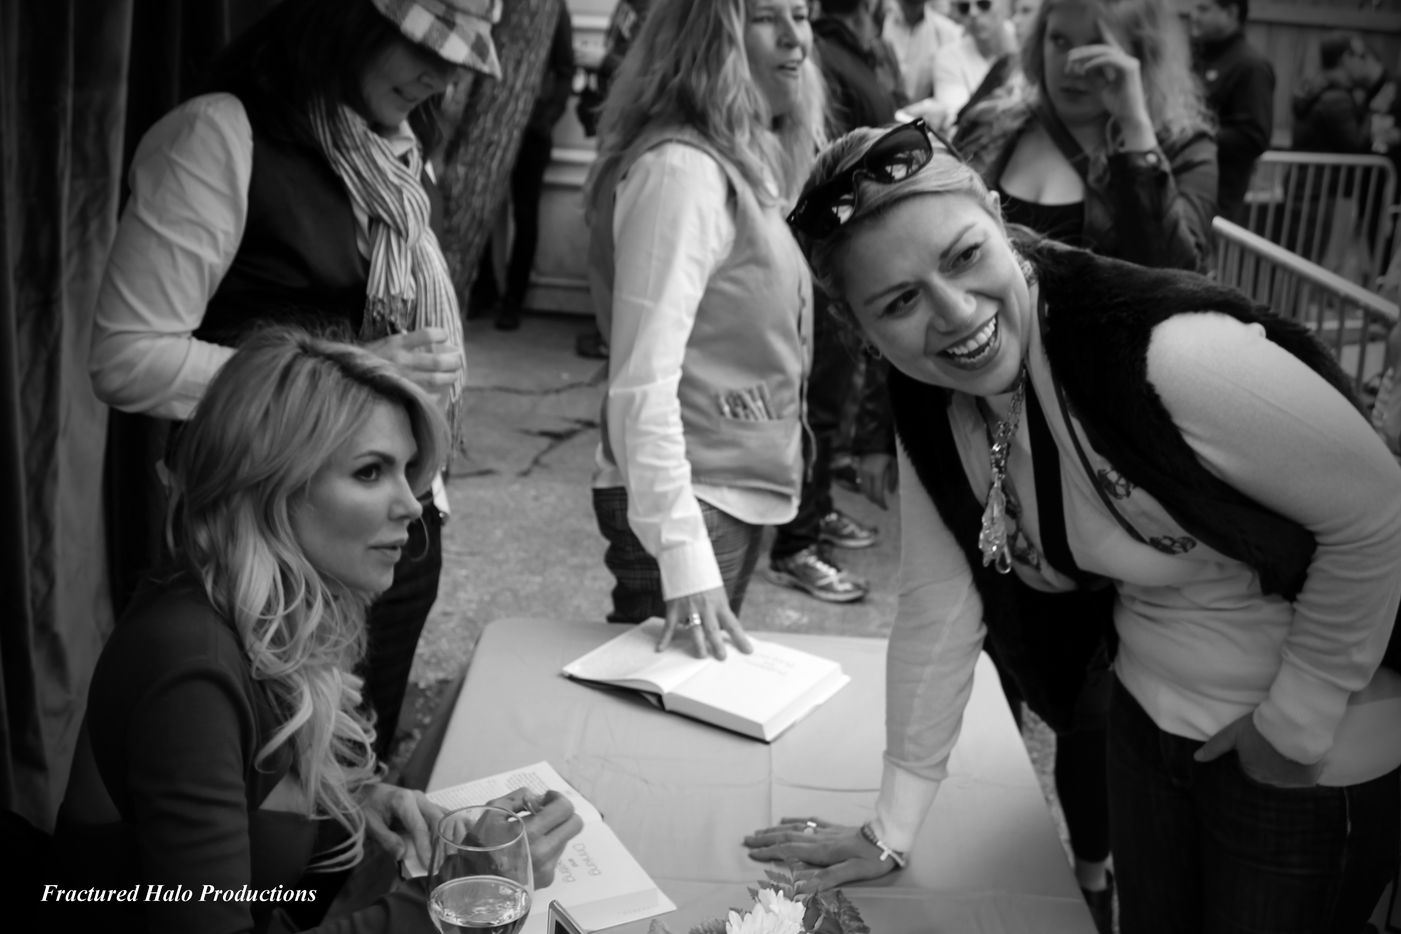 'Real Housewife' of Beverly Hills Brandi Glanville signs books for fans at the Grapevine Bar.